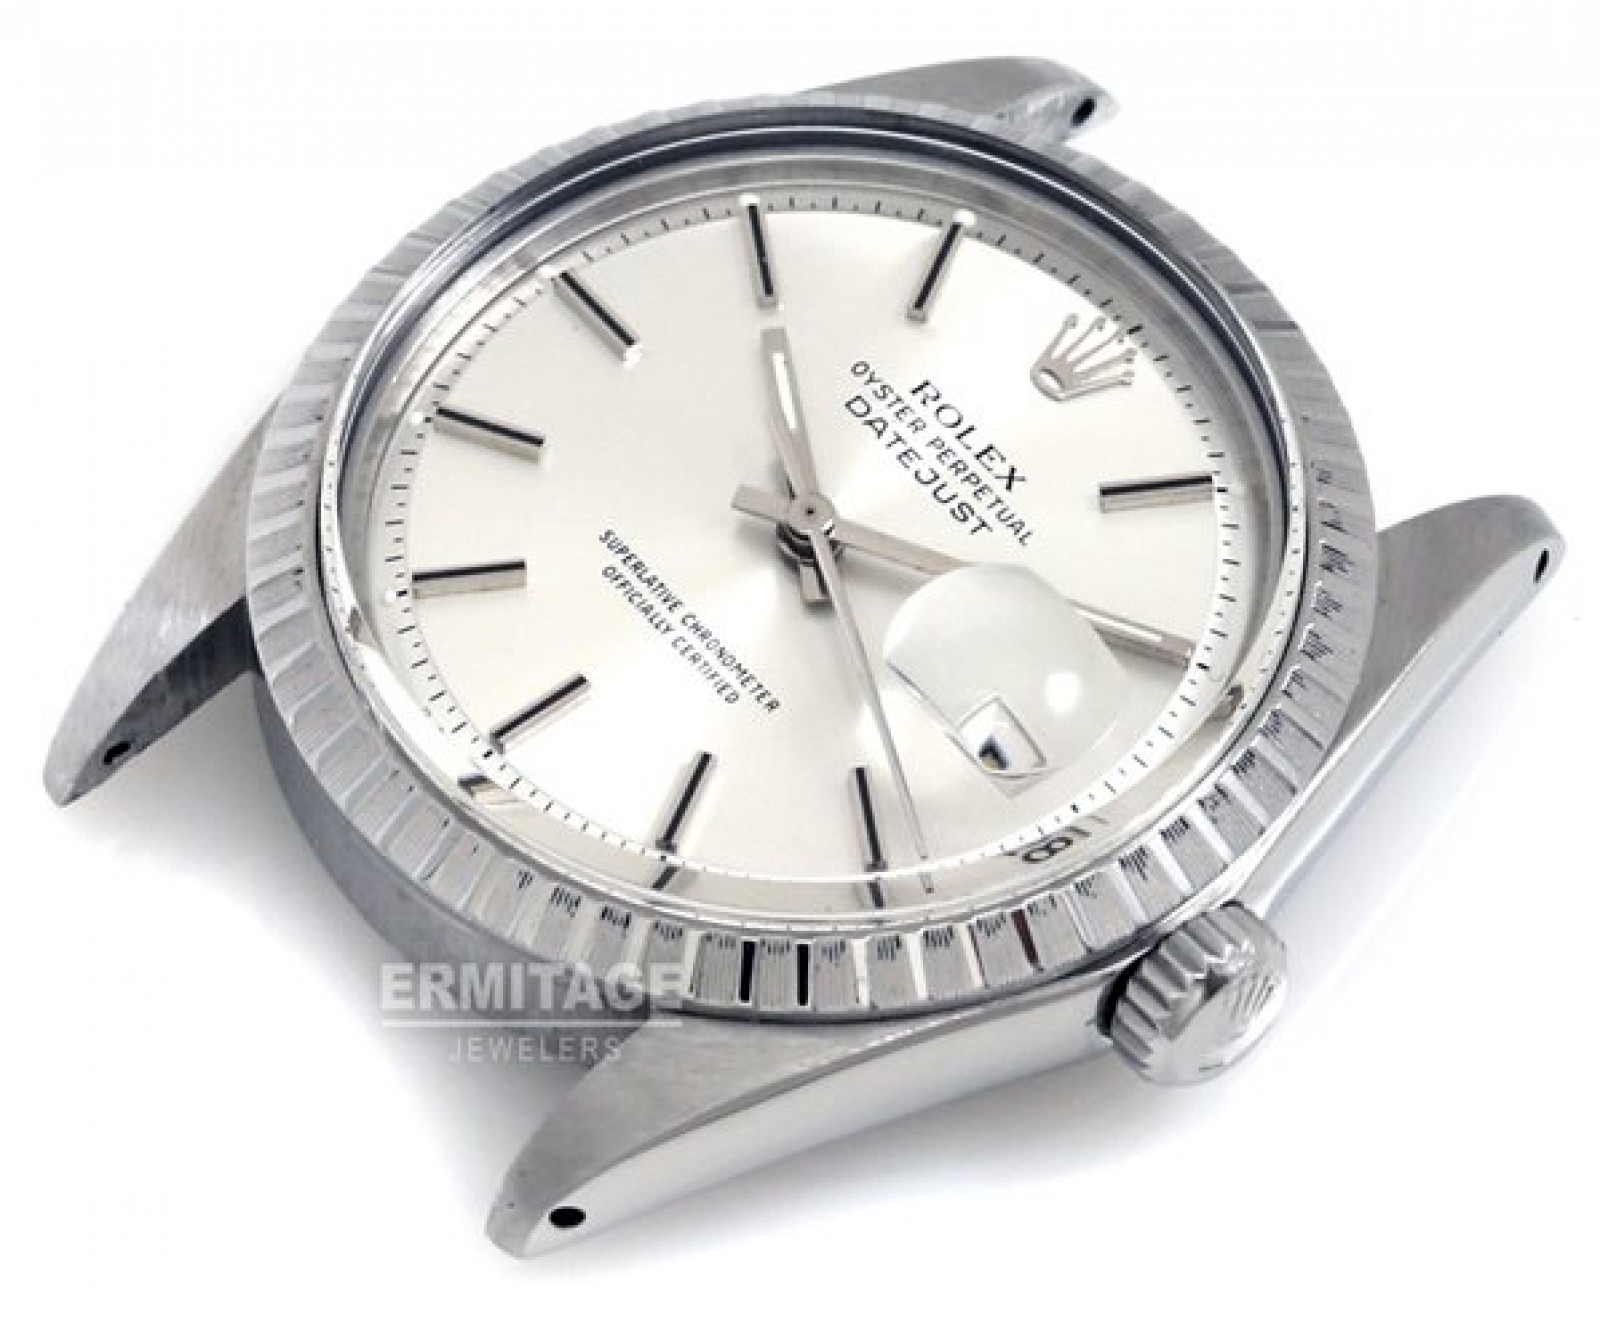 Rolex Oyster Perpetual Datejust 1601 Steel